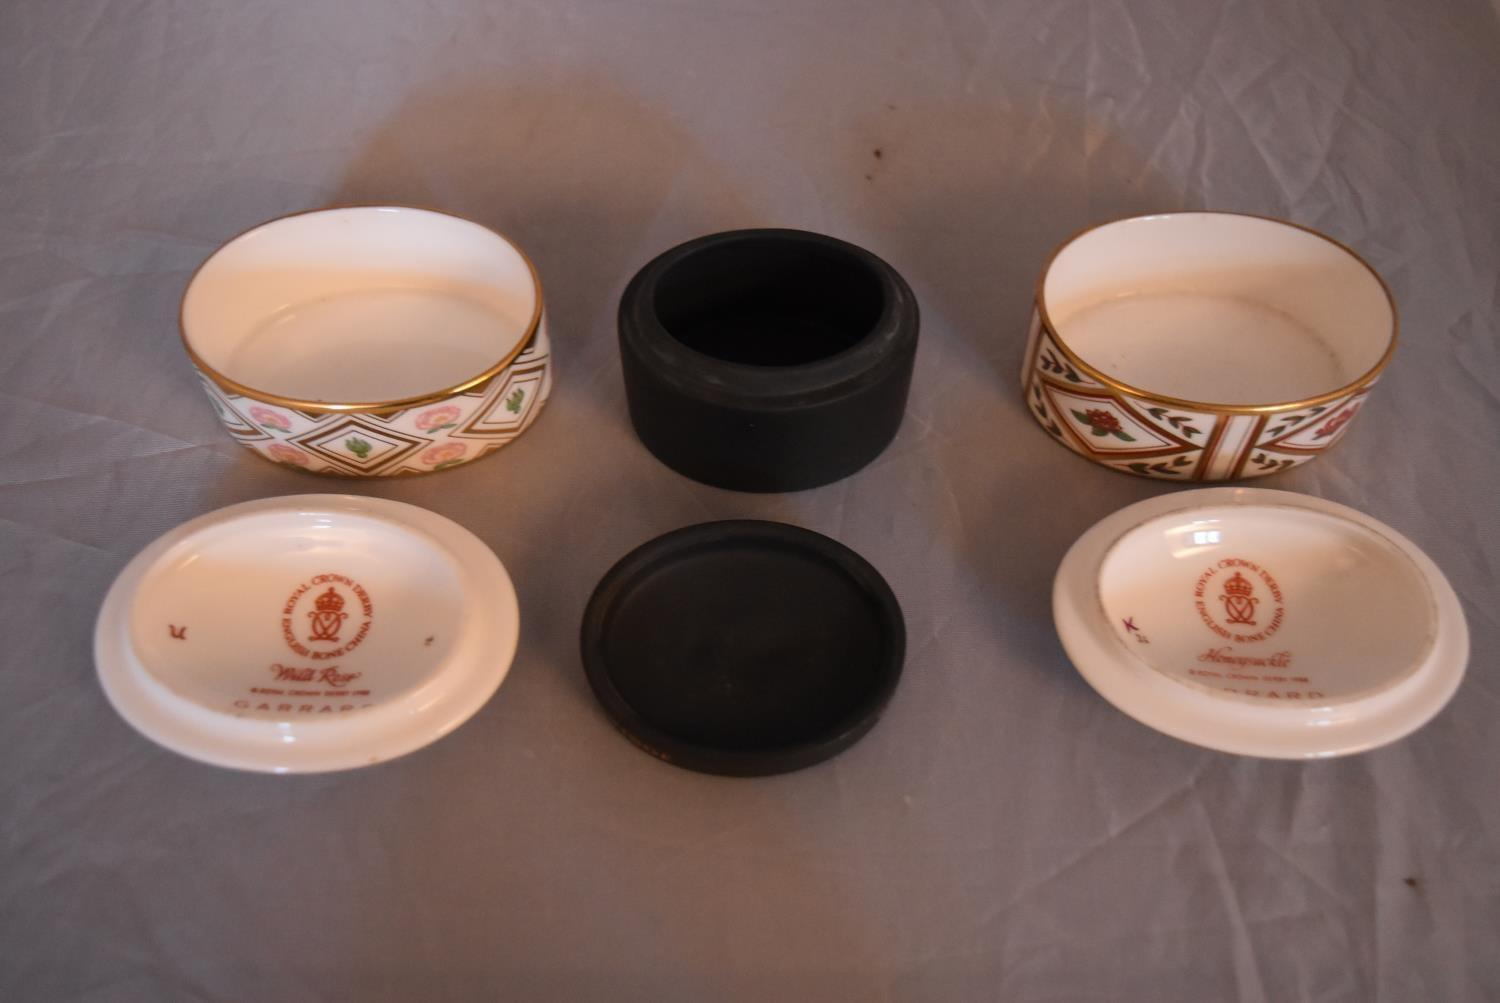 Three bone china and ceramic trinket boxes. Two by Royal Crown Derby, Wild Rose and Honeysuckle - Image 2 of 4